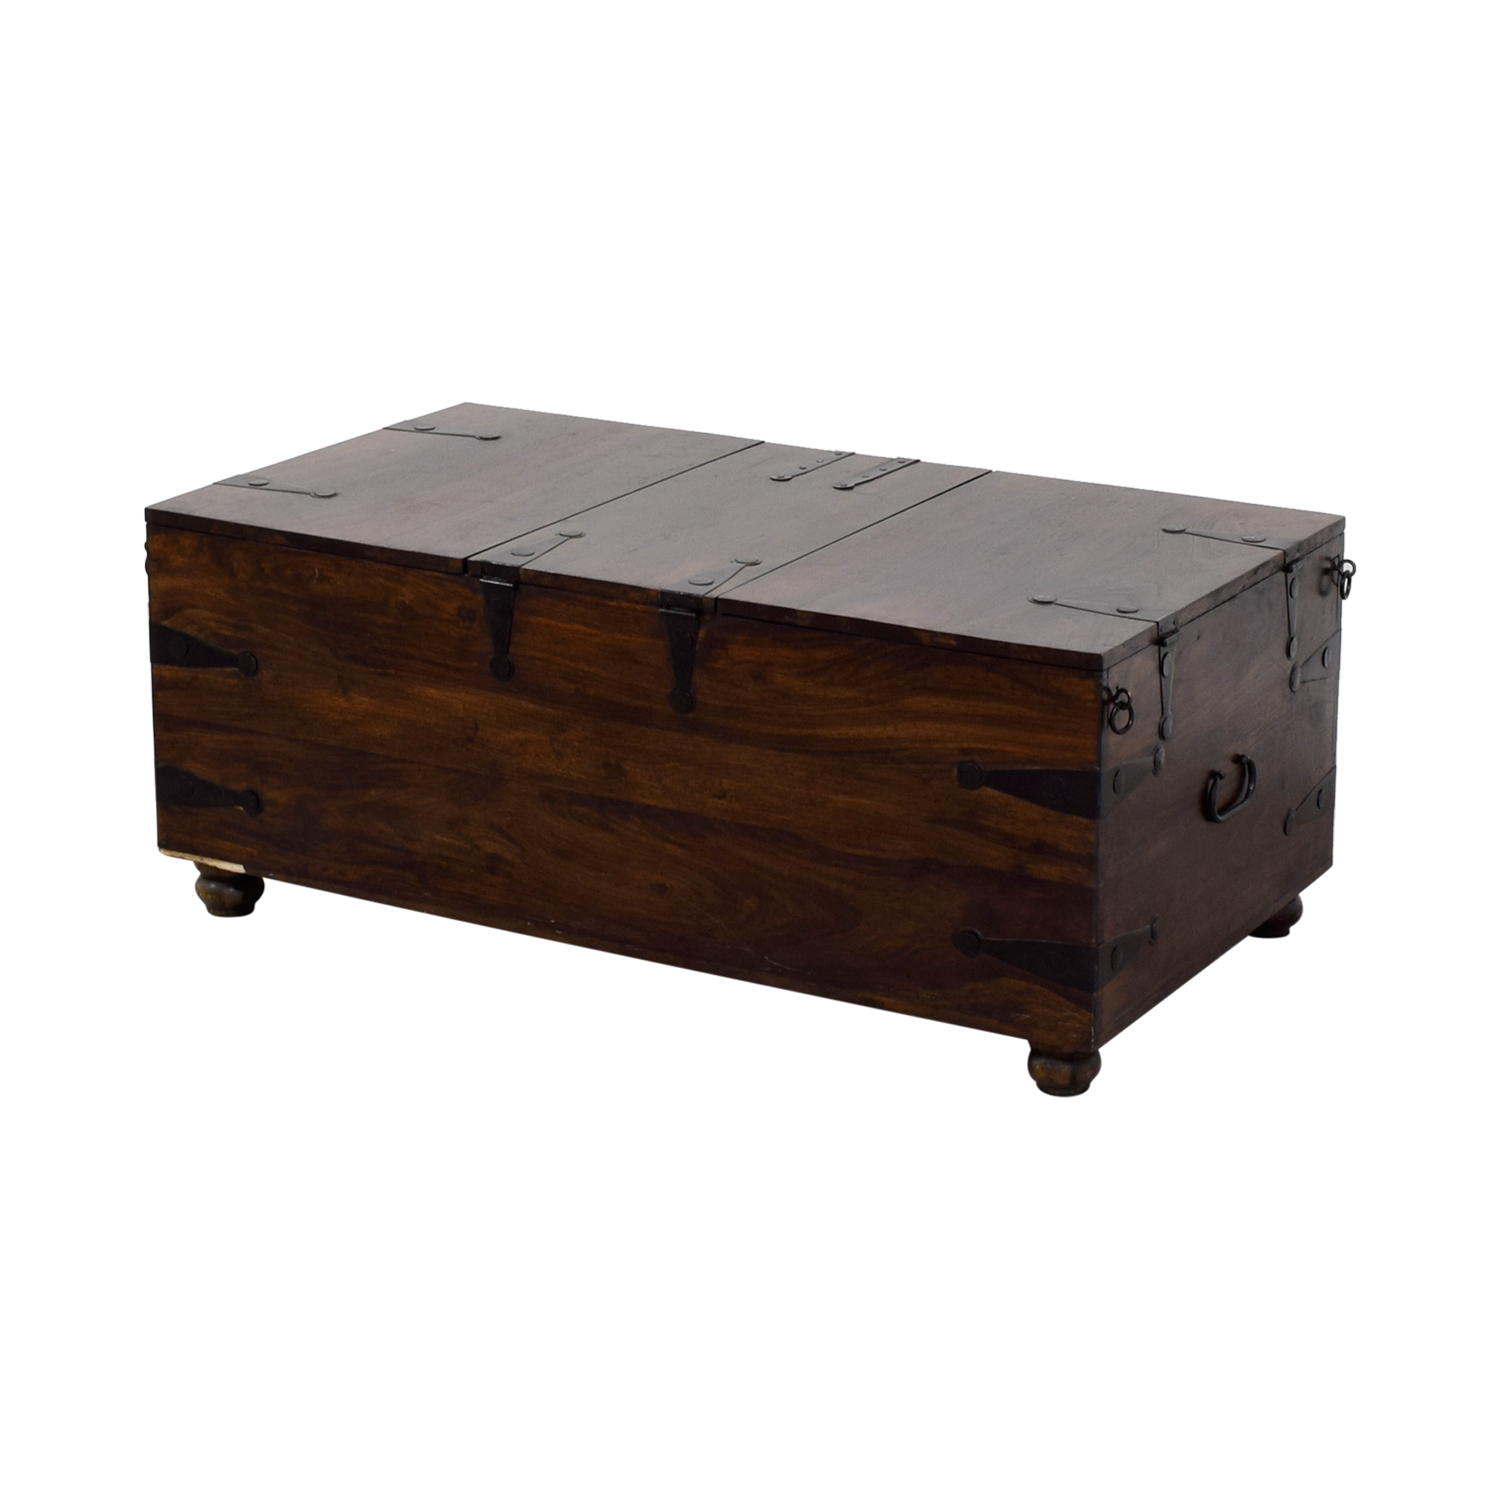 70 off crate barrel crate barrel trunk coffee table. Black Bedroom Furniture Sets. Home Design Ideas